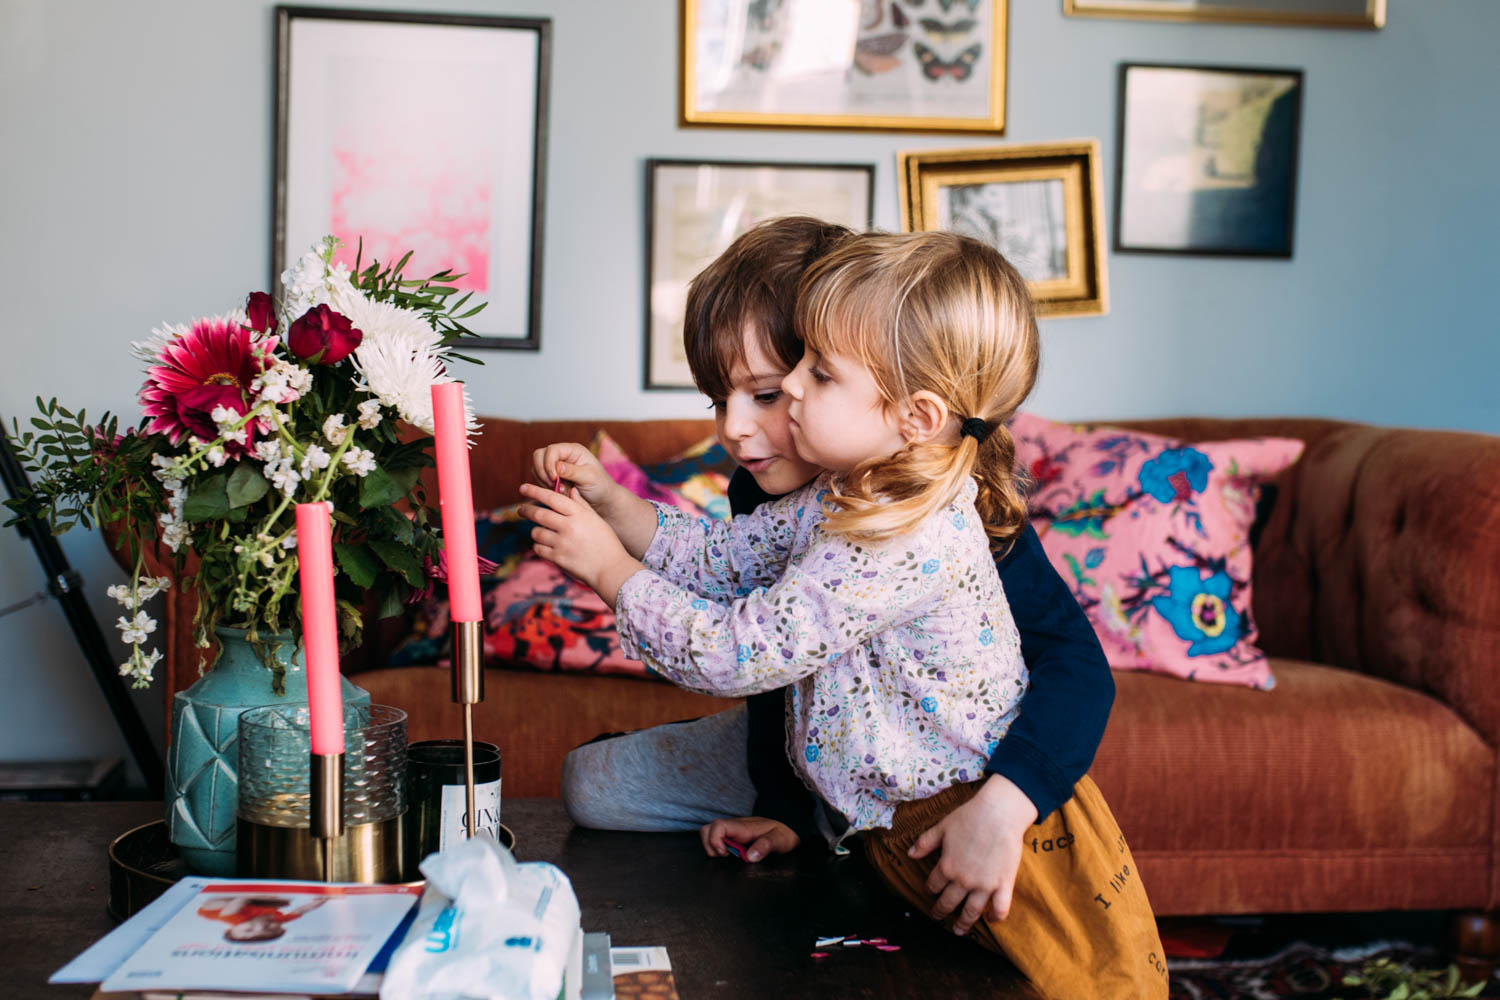 A young brother and sister stand in their living room looking at a bouquet of flowers with their arms round eachother.